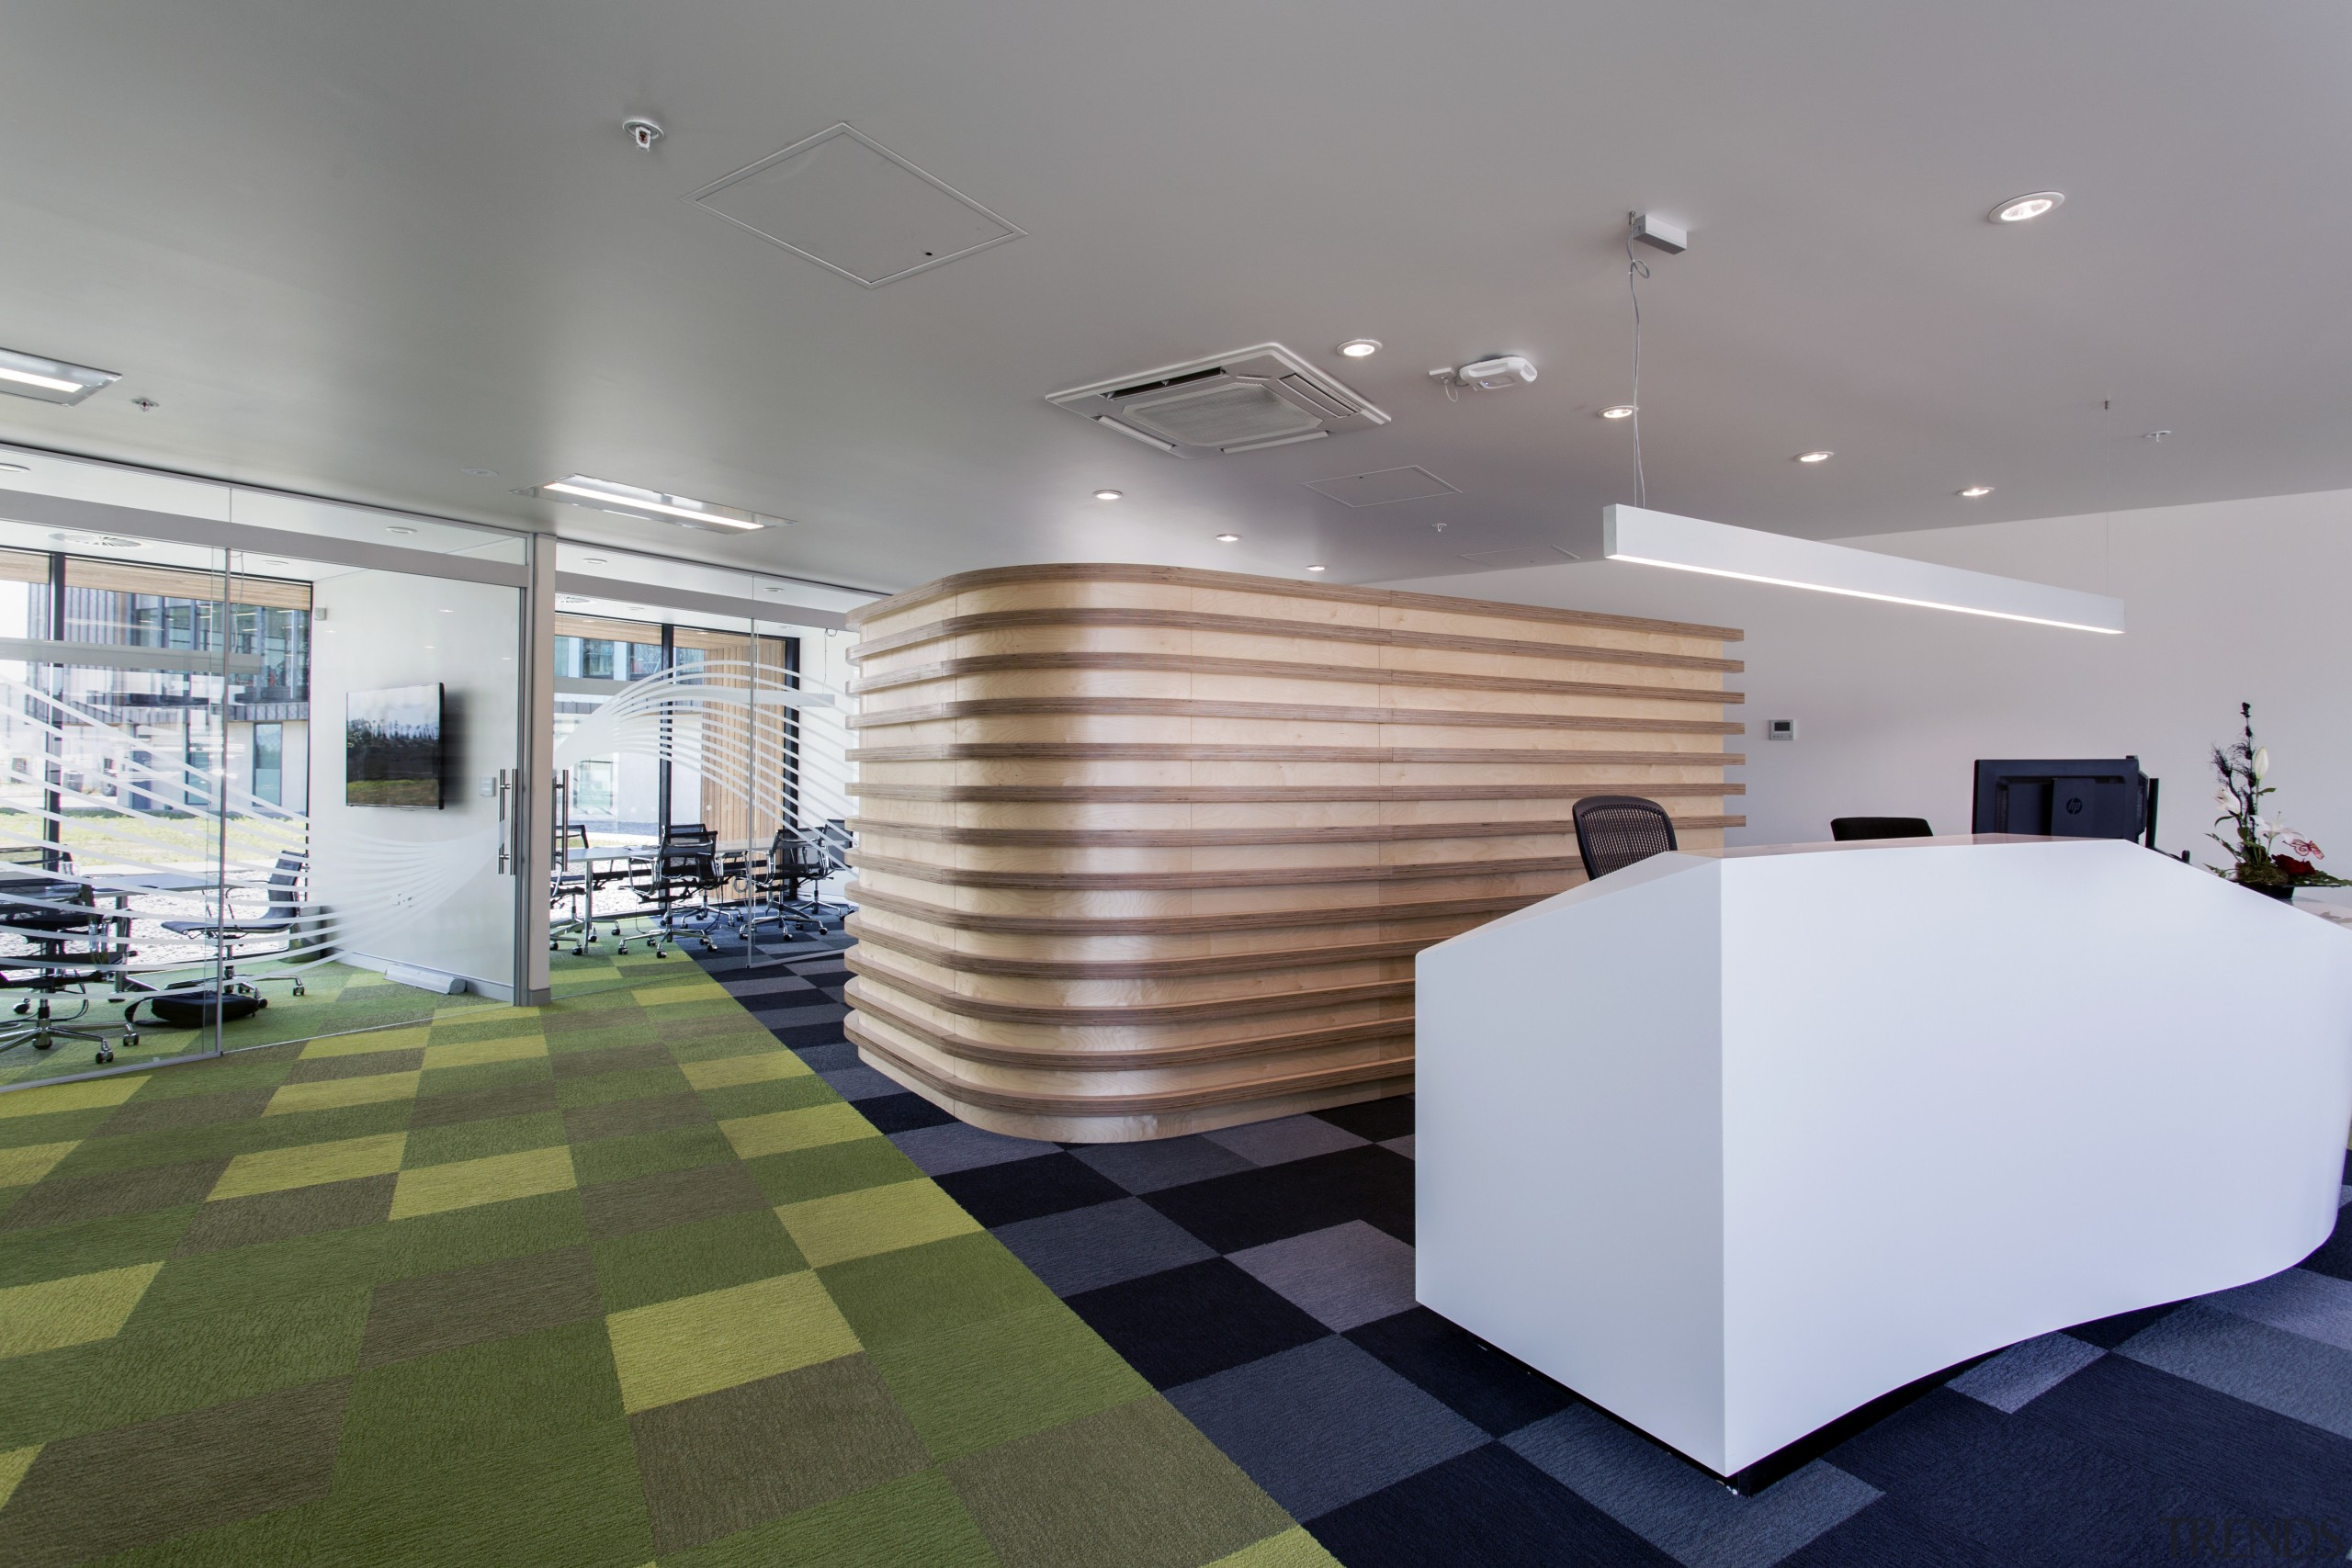 The reception building, part of the upgrade of architecture, ceiling, daylighting, floor, flooring, interior design, lobby, office, product design, real estate, gray